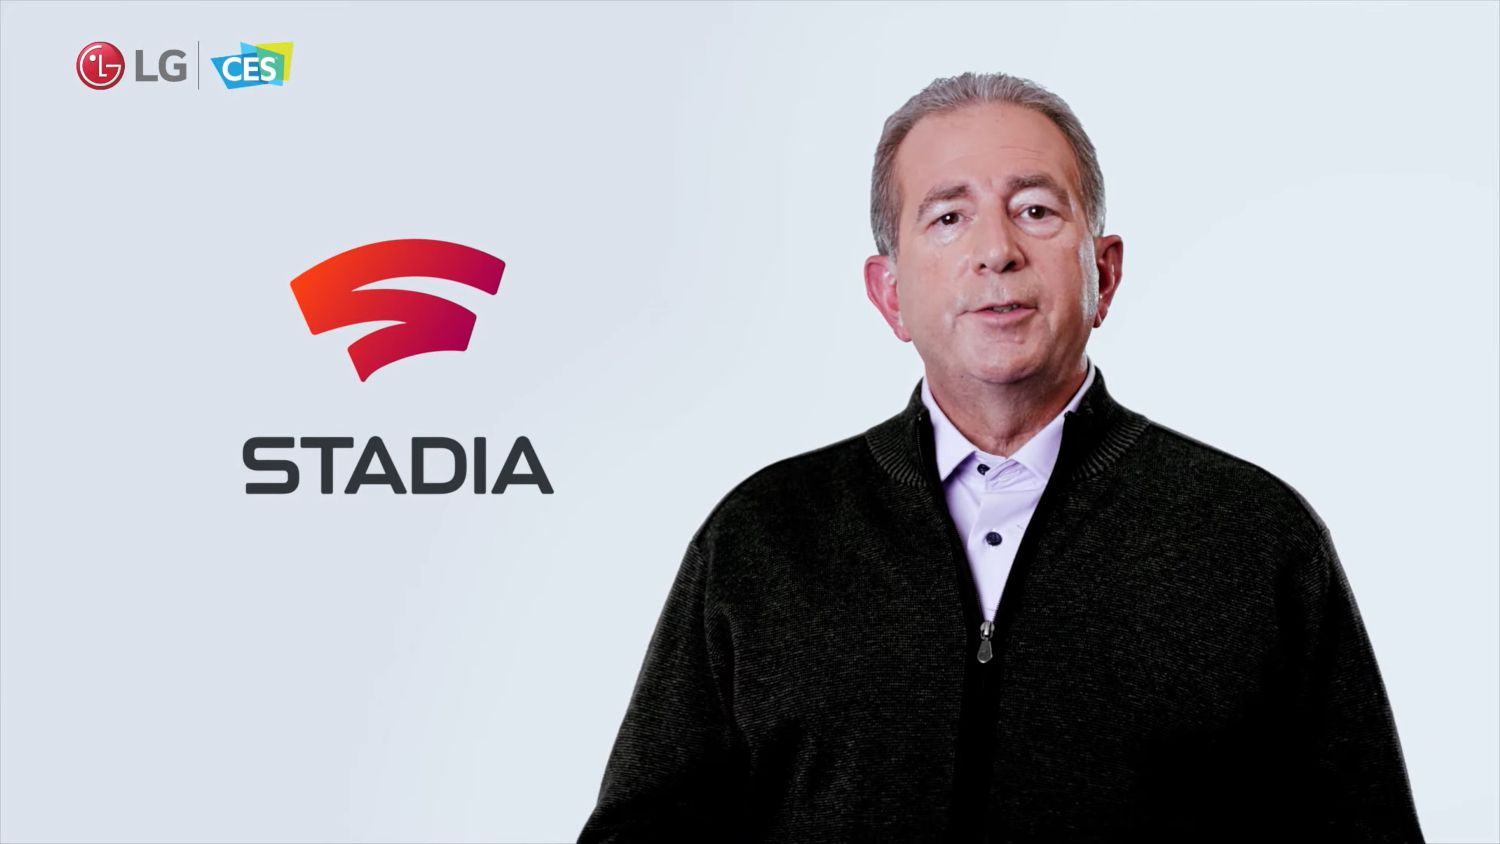 LG announcing Google Stadia's coming to LG TVs